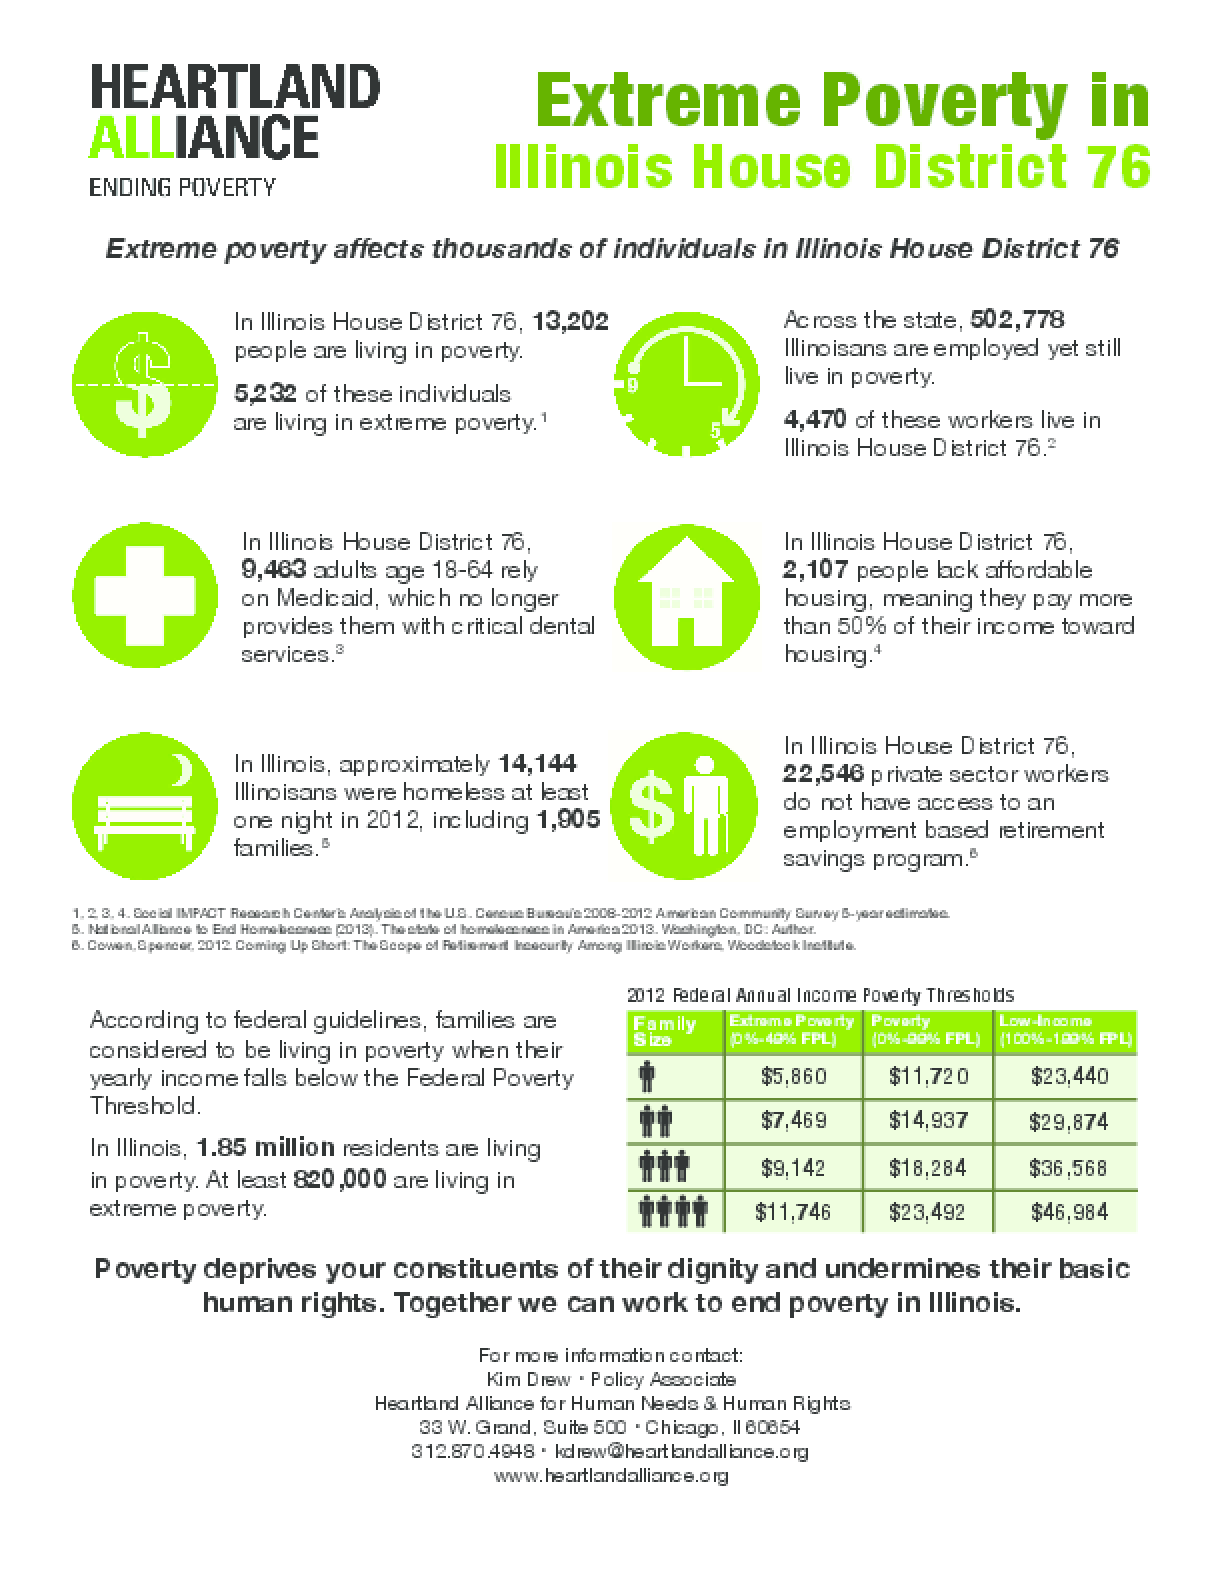 Poverty Fact Sheets for Illinois House District 76